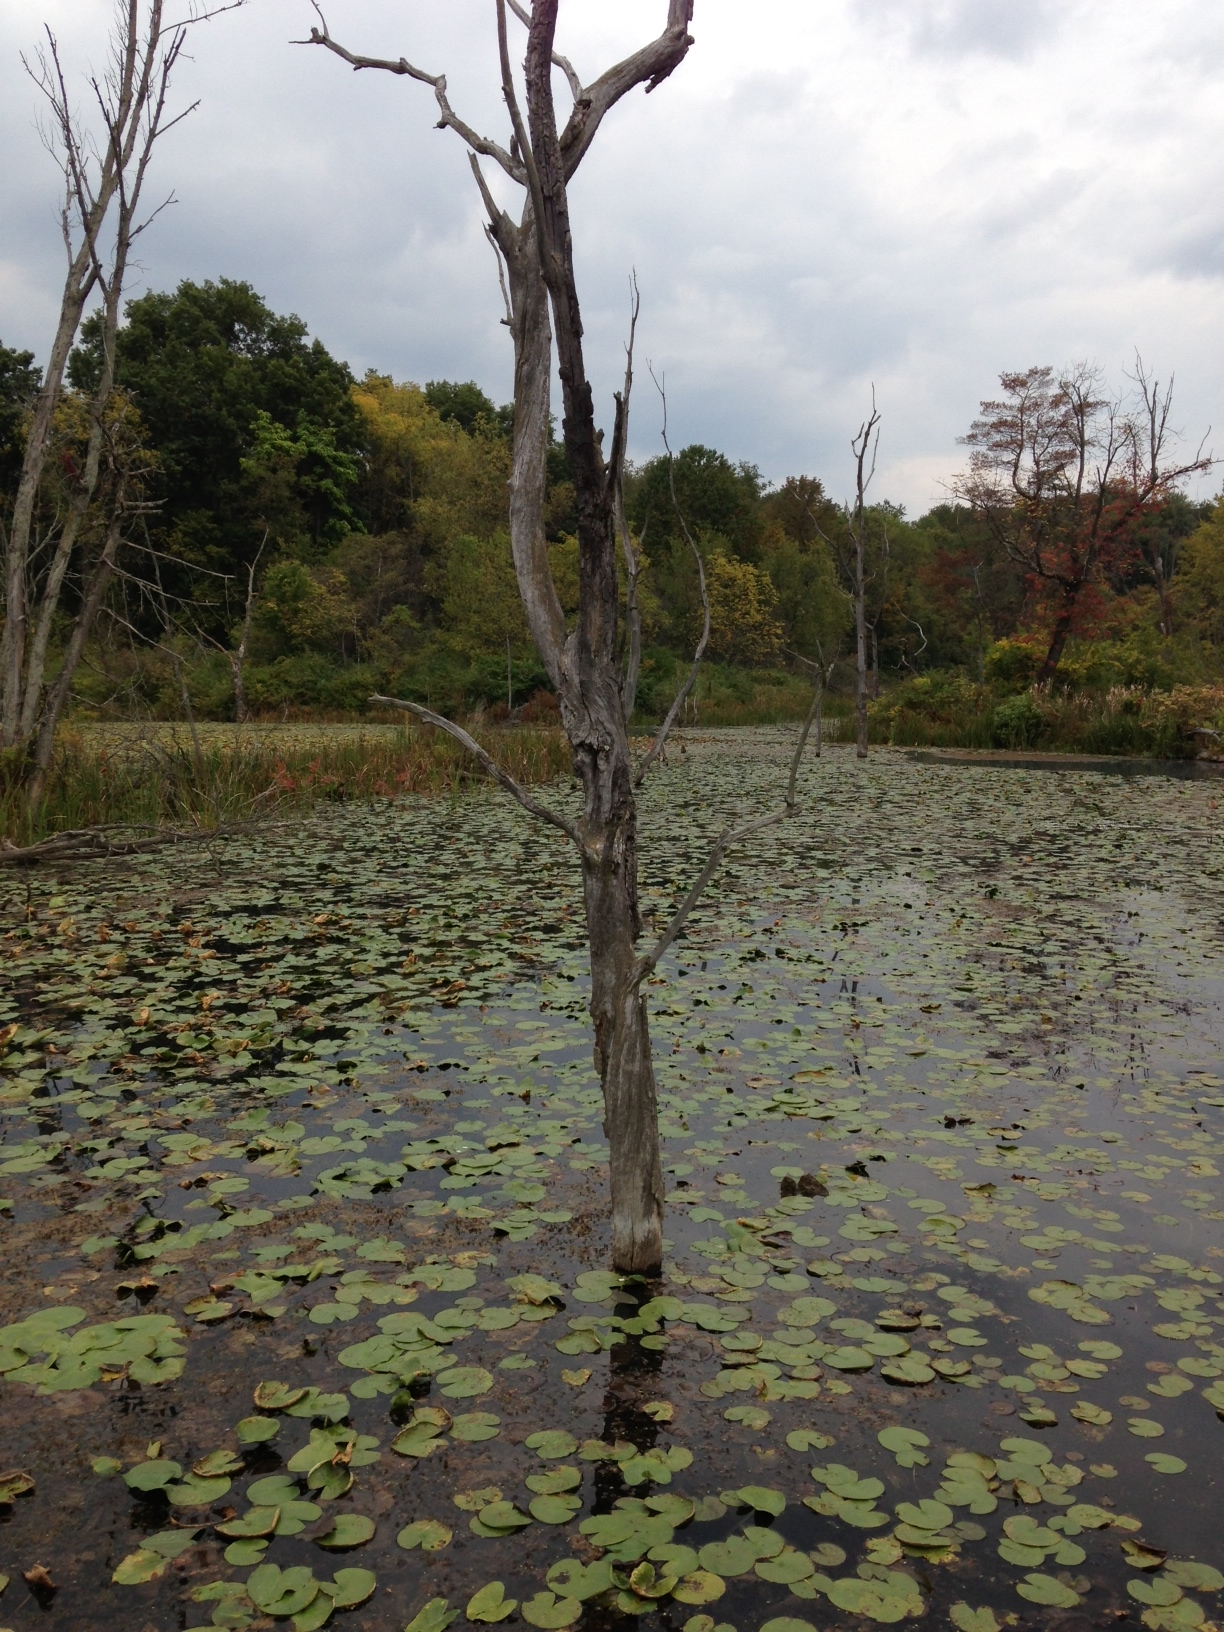 Dead tree emerging from lilypad dotted water, with forest and gray sky in the background.